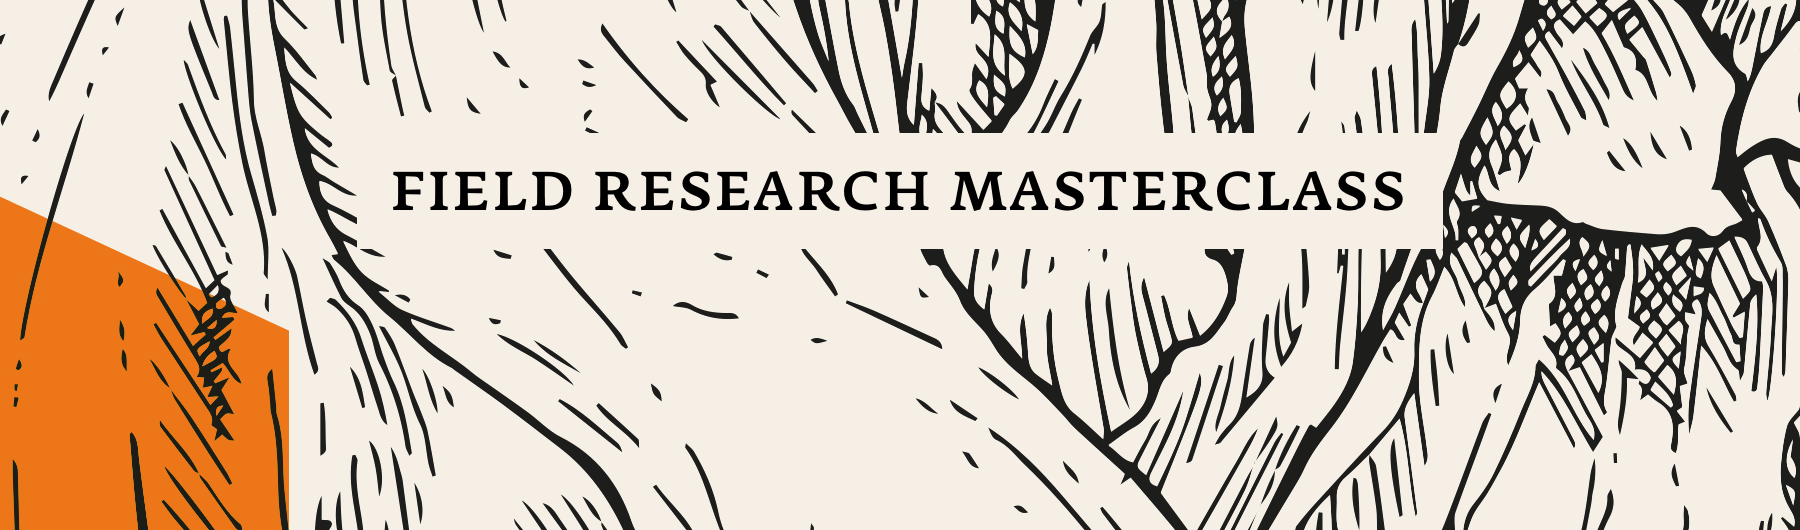 Jan Chipchase - Field Research Masterclass, Melbourne, December 5th